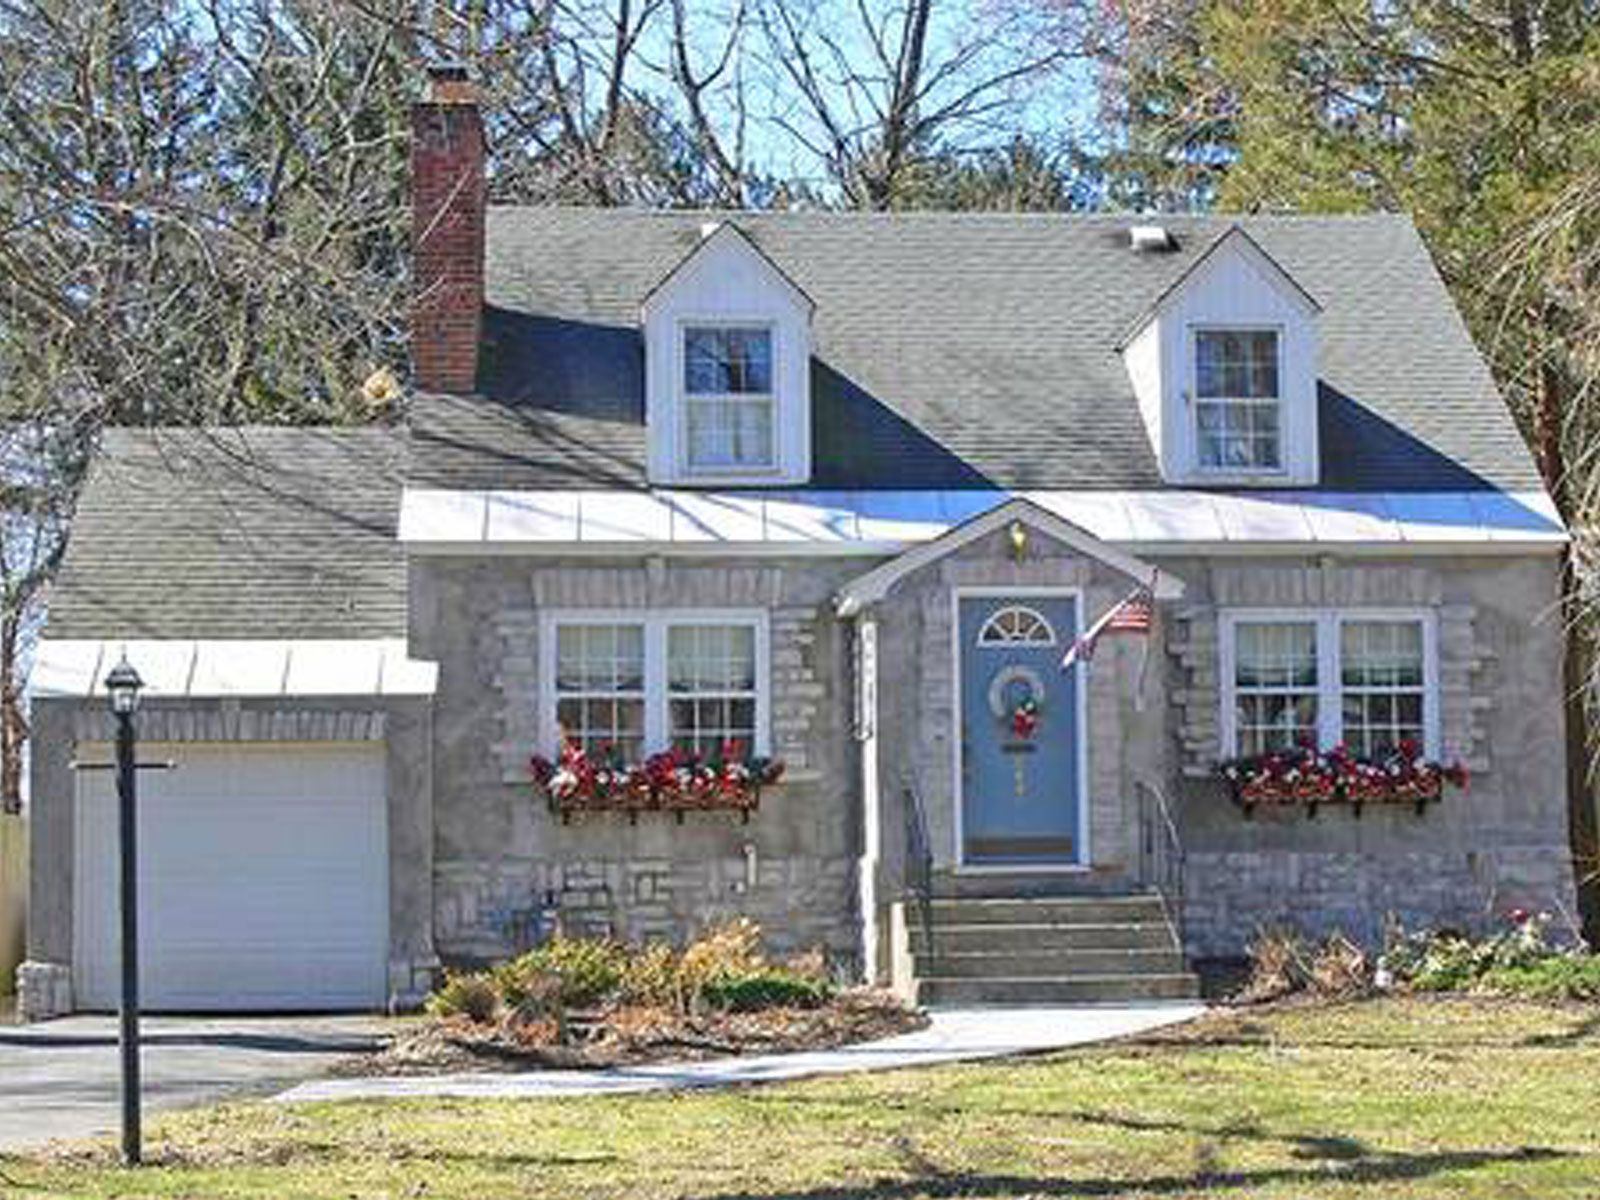 Cape Cod Exterior Ideas Part - 21: Before U0026 After Cape Cod House Gets A Makeover